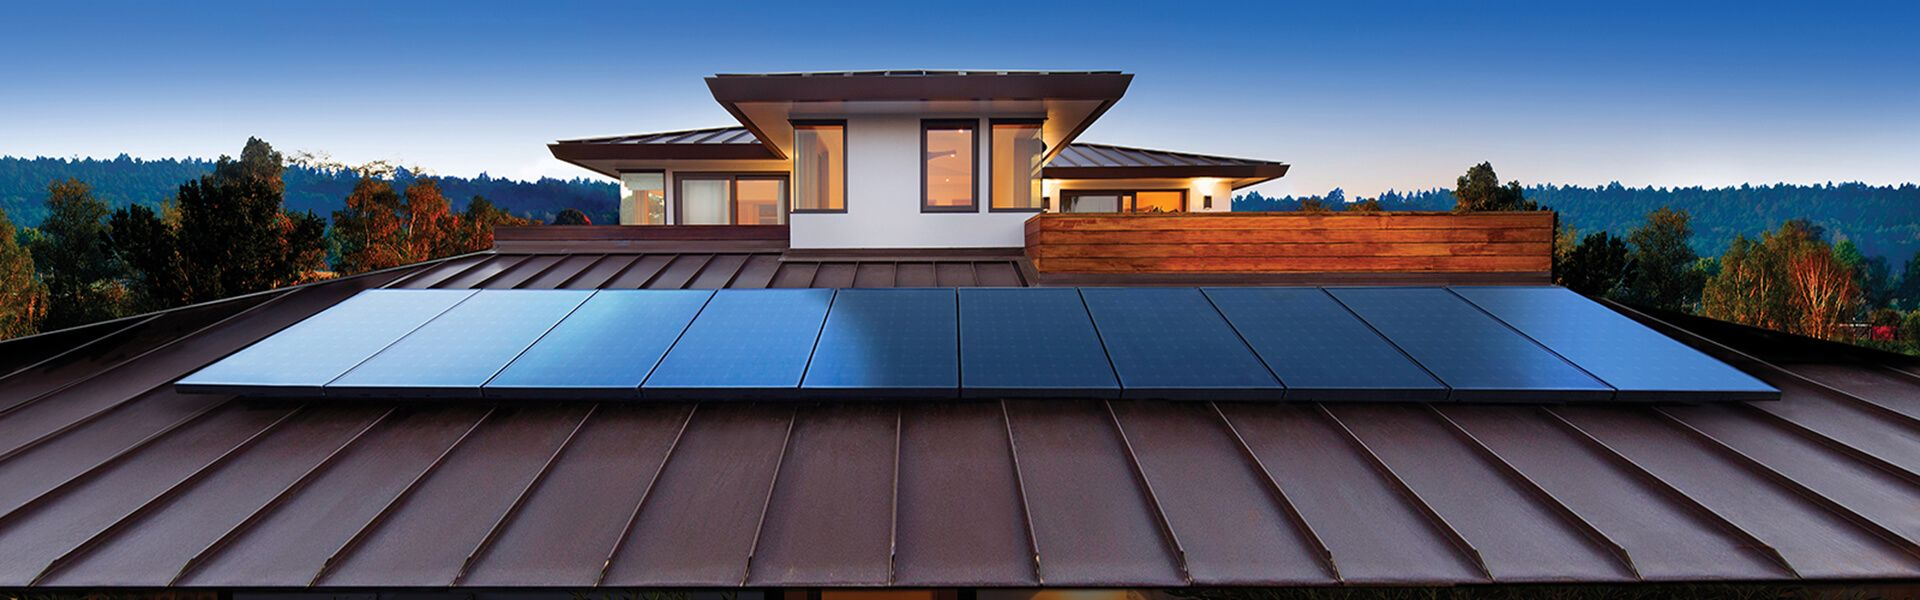 How Do Solar Panels Work on Home